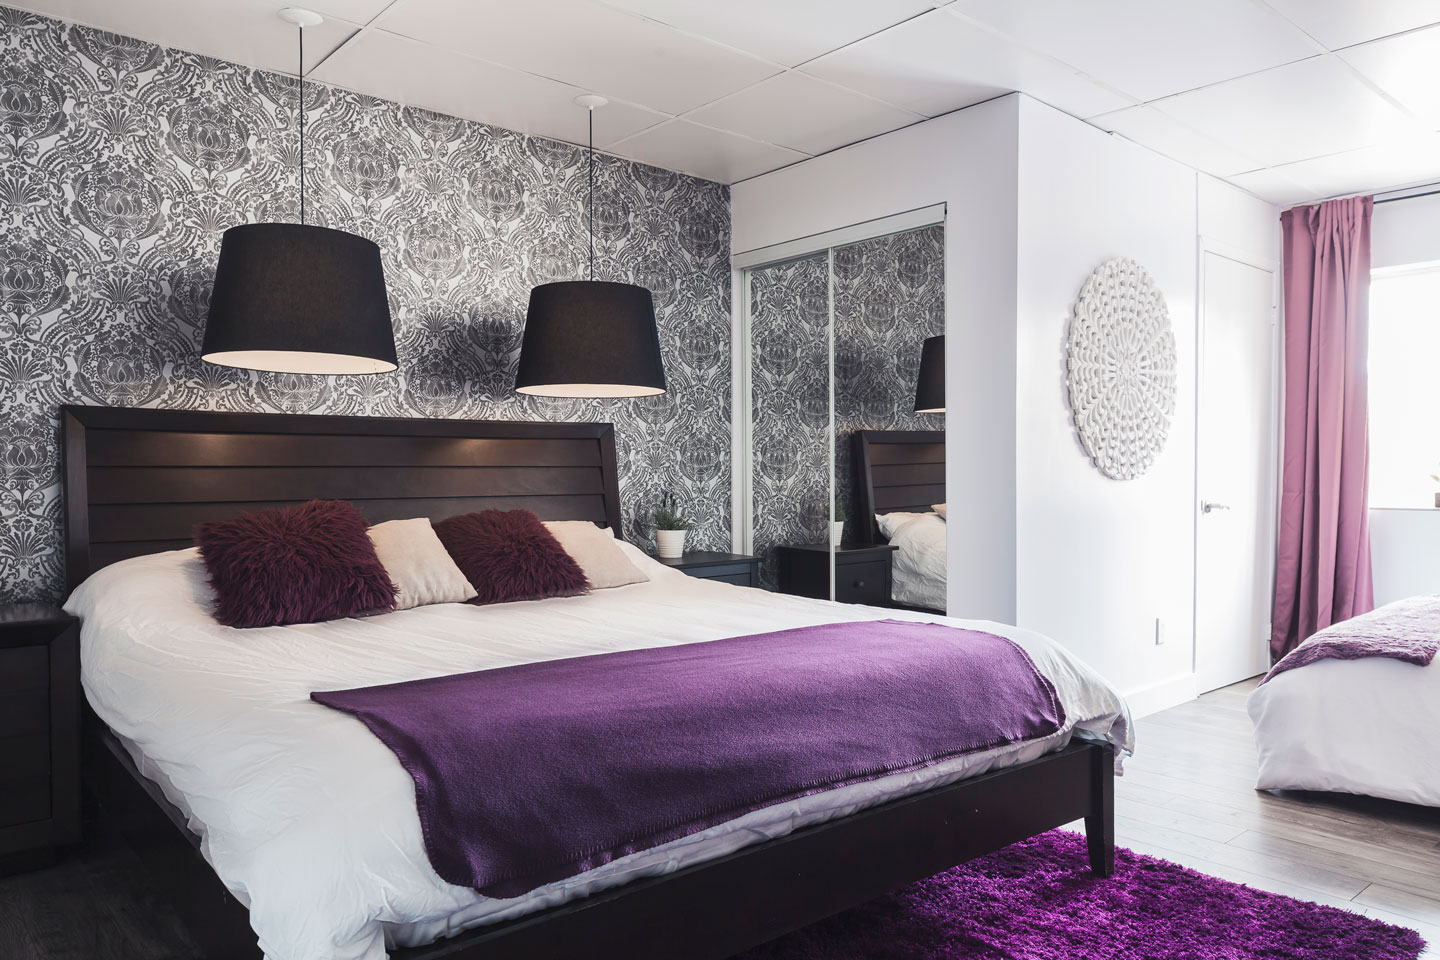 Entertainer: bedroom with king bed and memory foam mattress